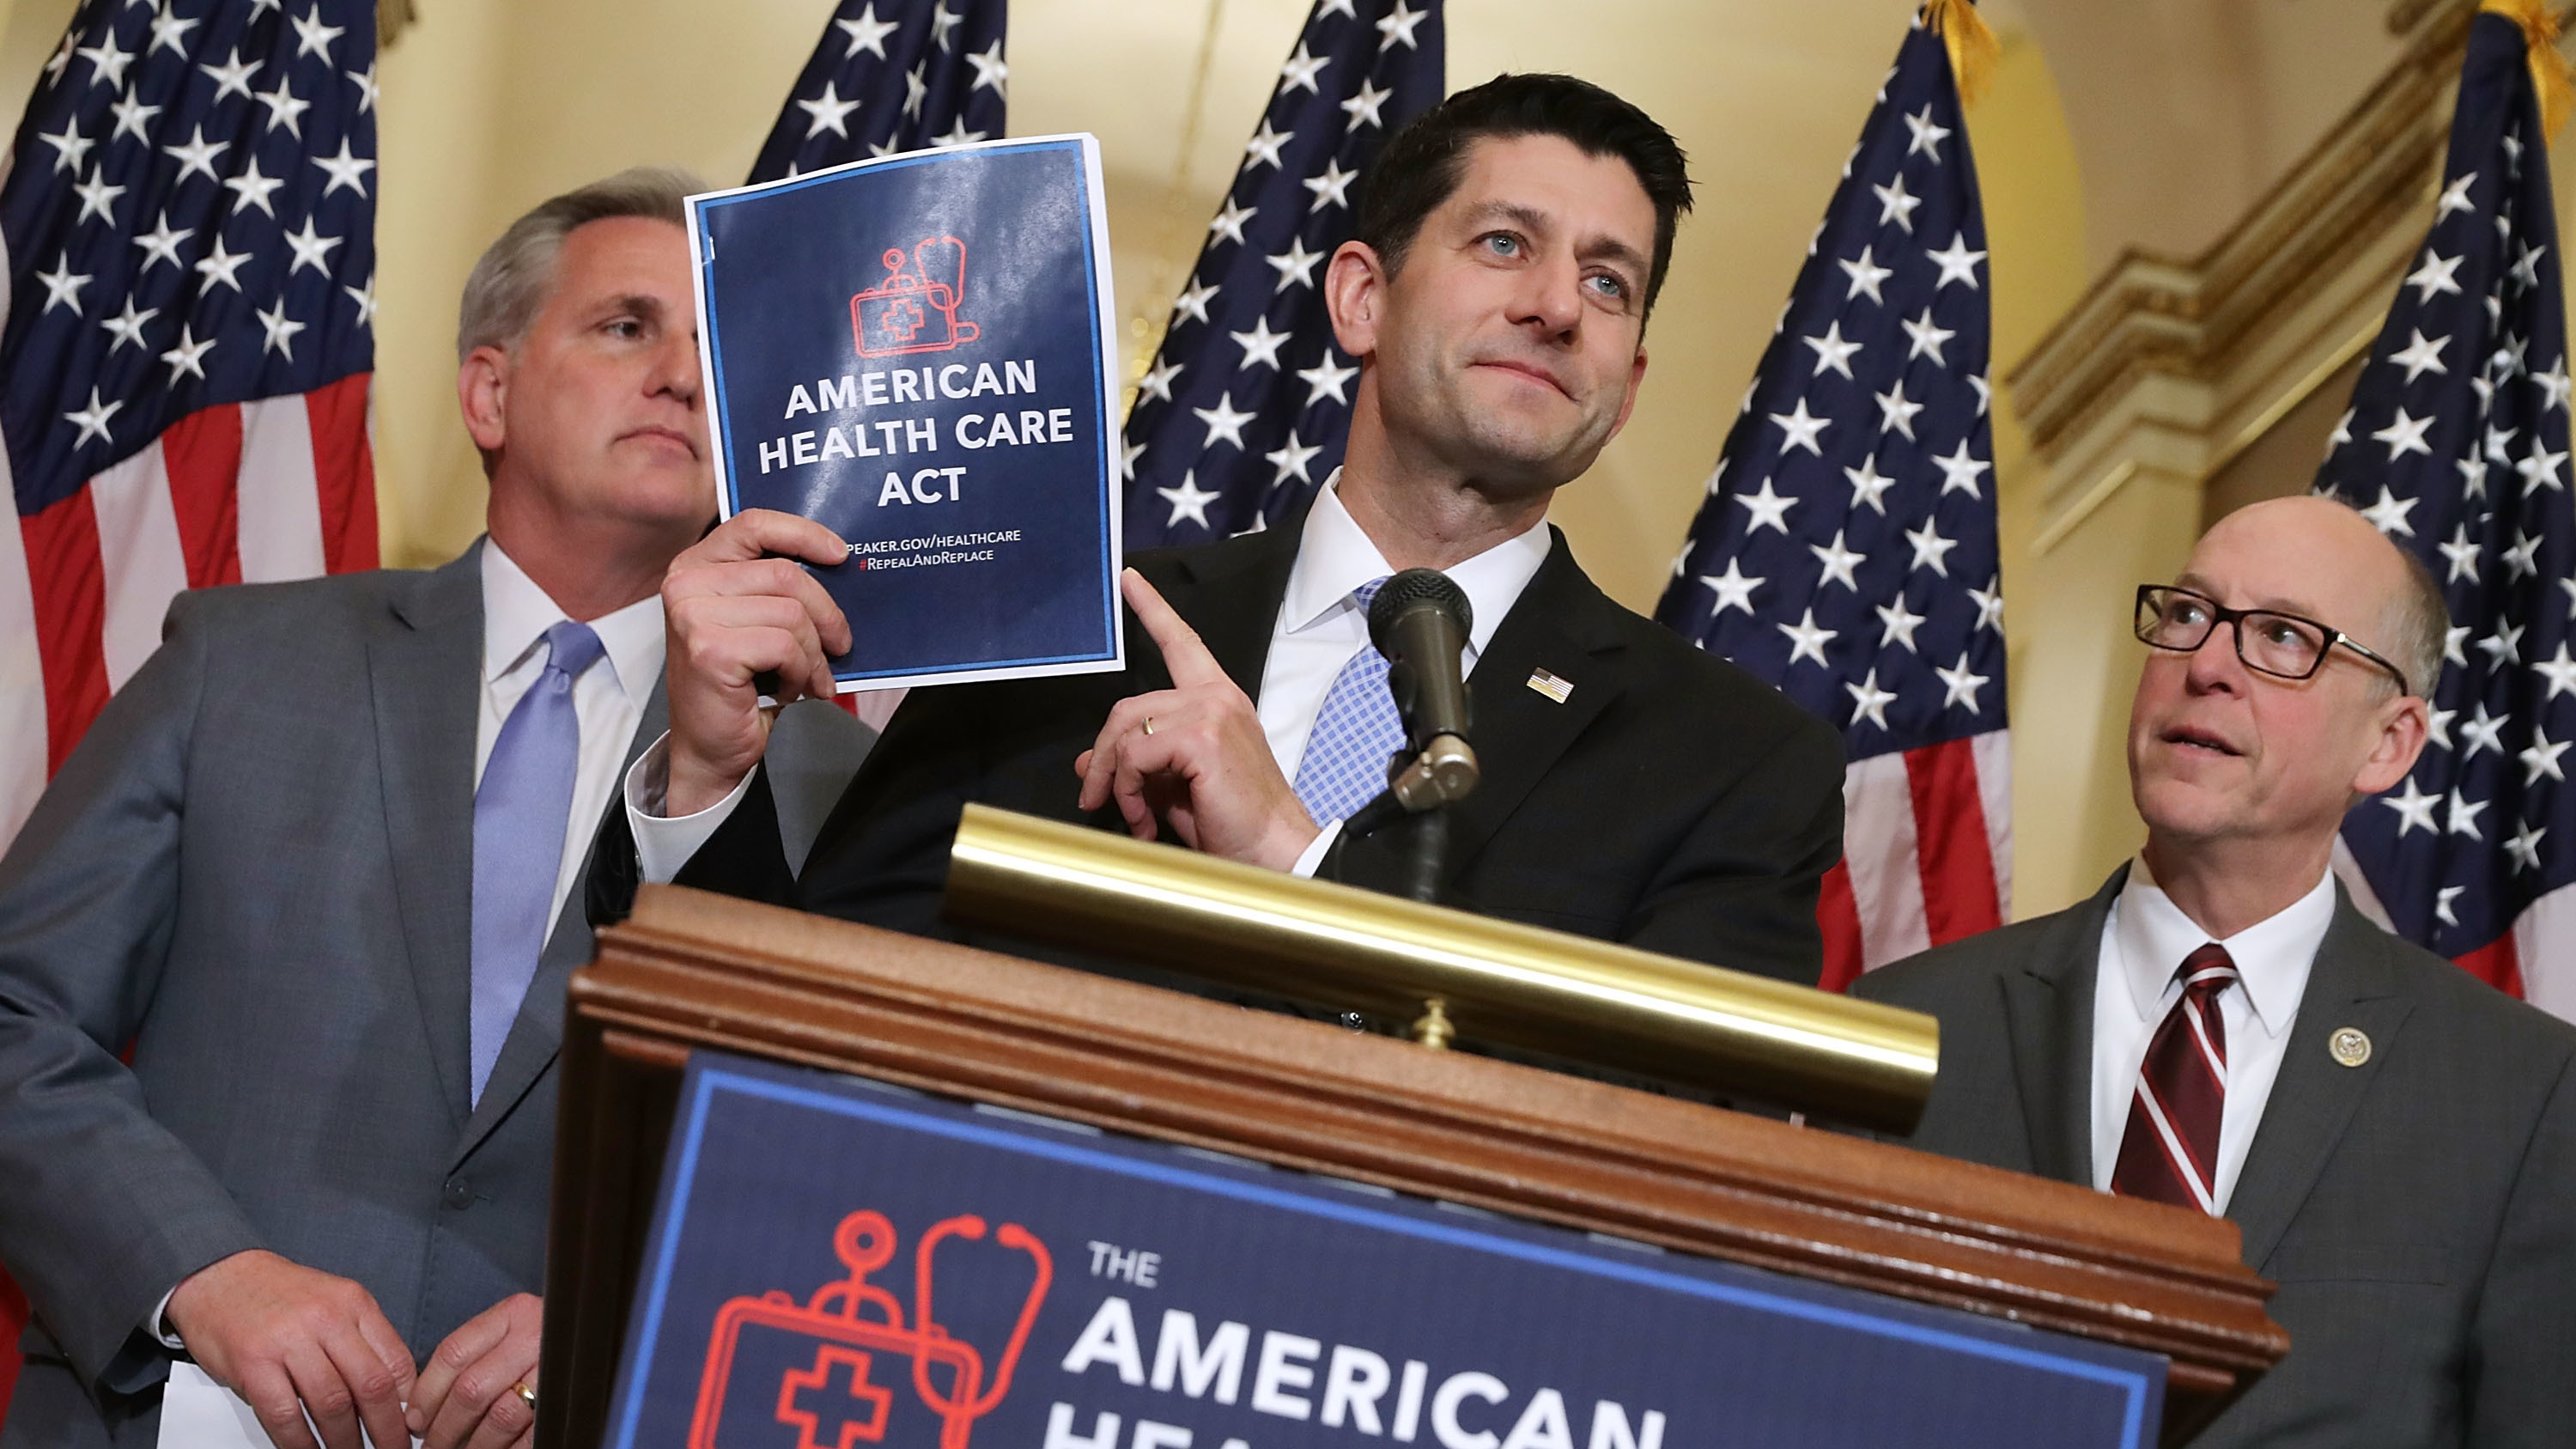 CBO: House GOP Health Care Rewrite Would Leave 23M More Uninsured